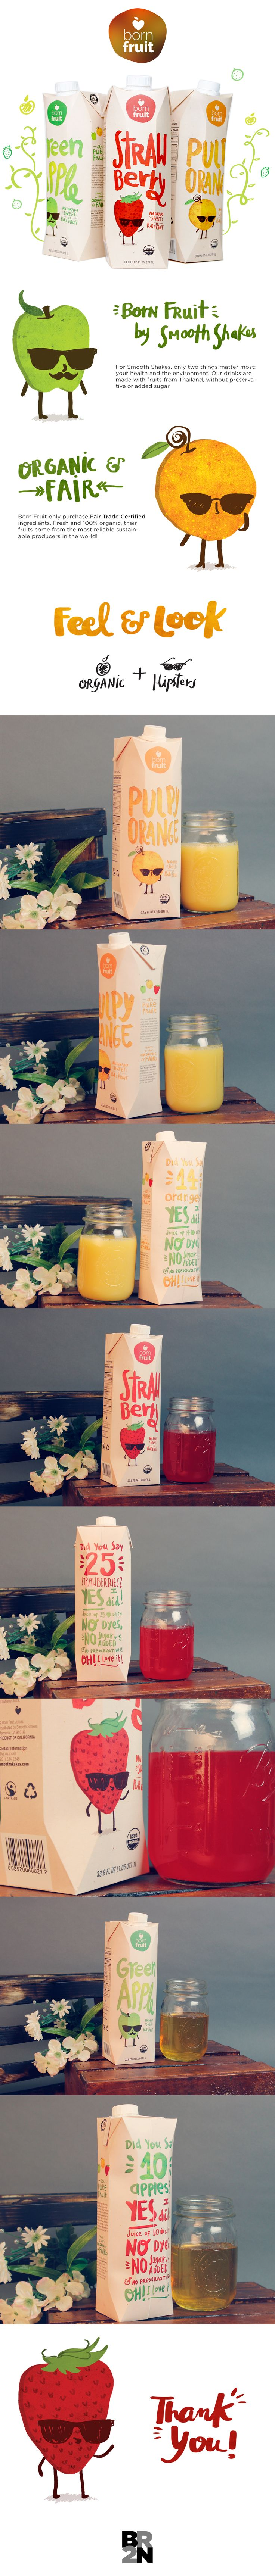 Born Fruit Juices - Packaging Design